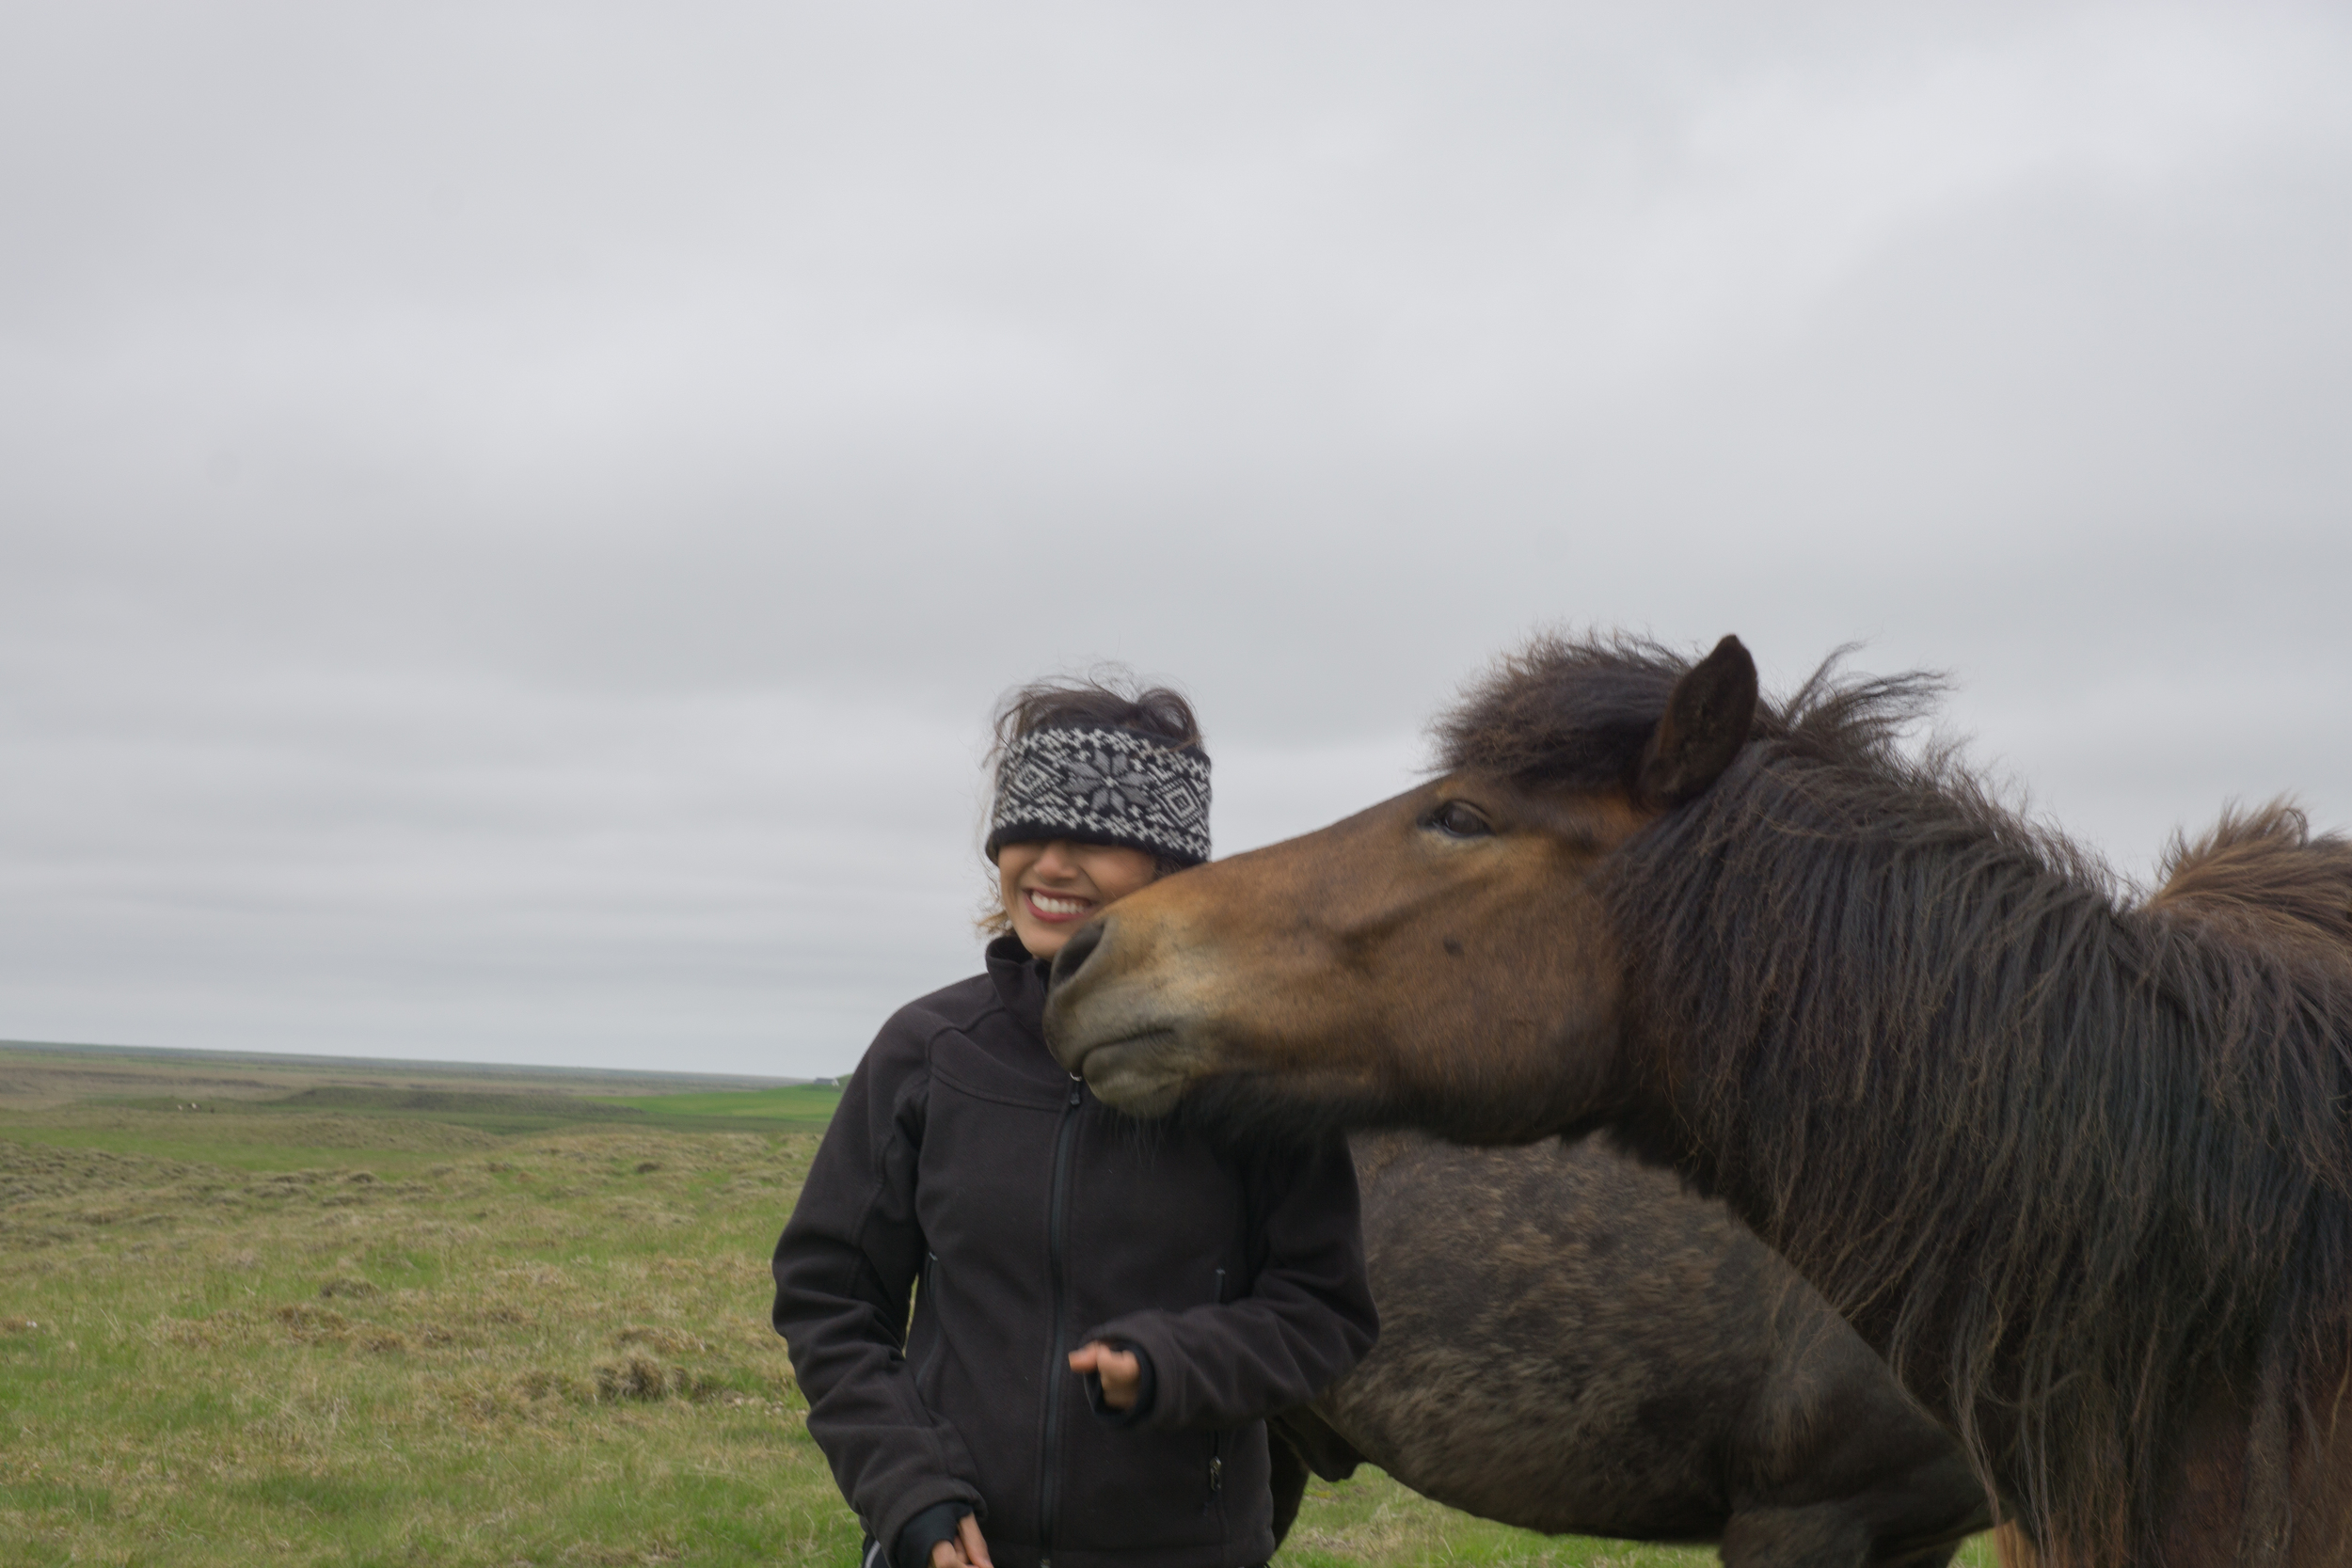 This horse is trying to eat me!